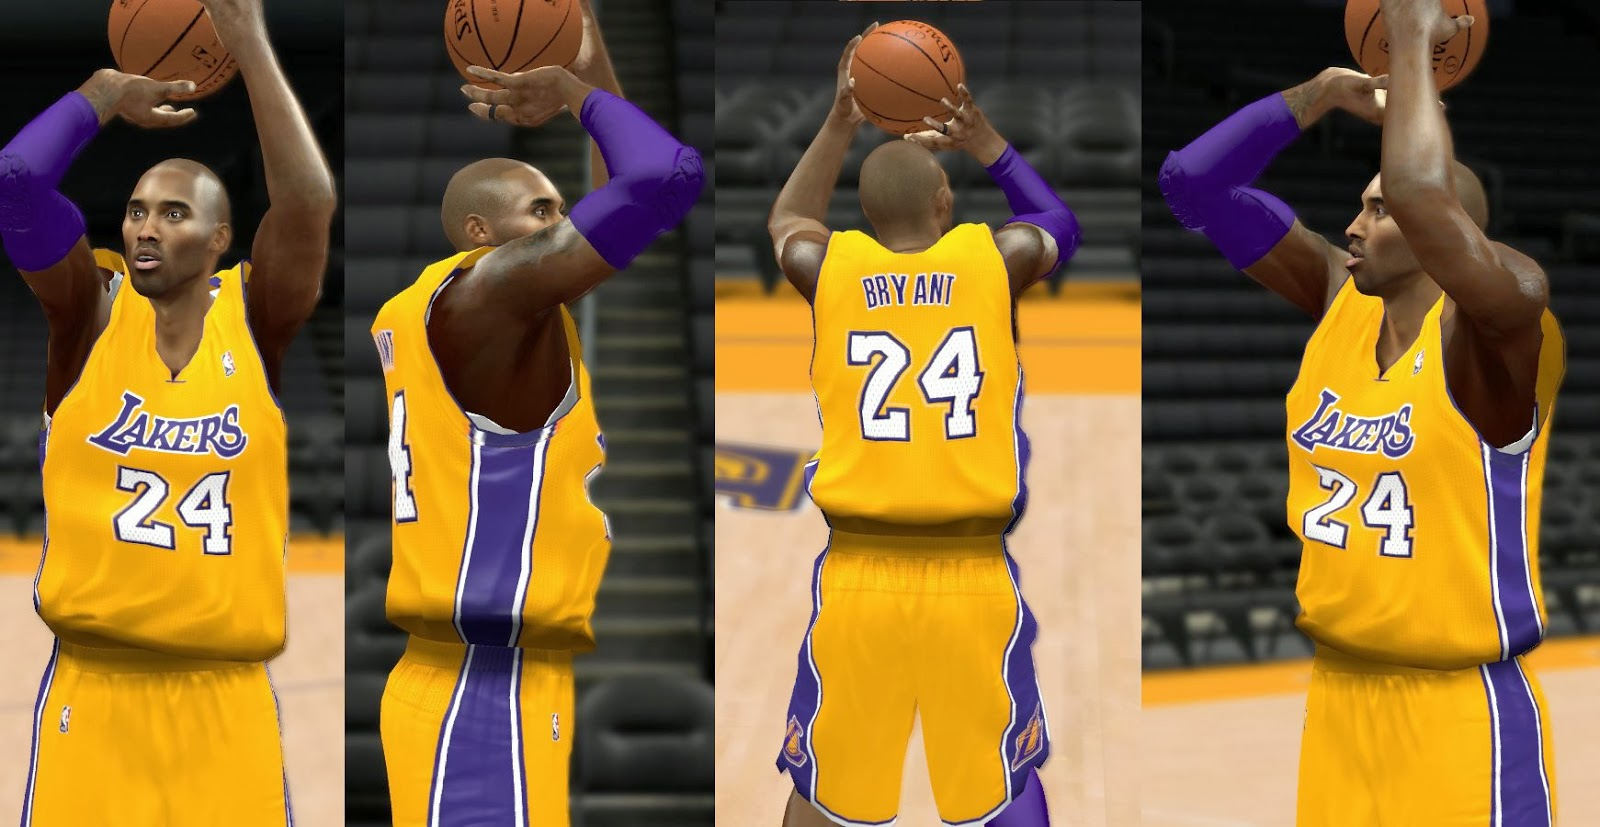 njcfkh NBA 2k14 All LA Lakers Jersey Patch Pack Download - HoopsVilla